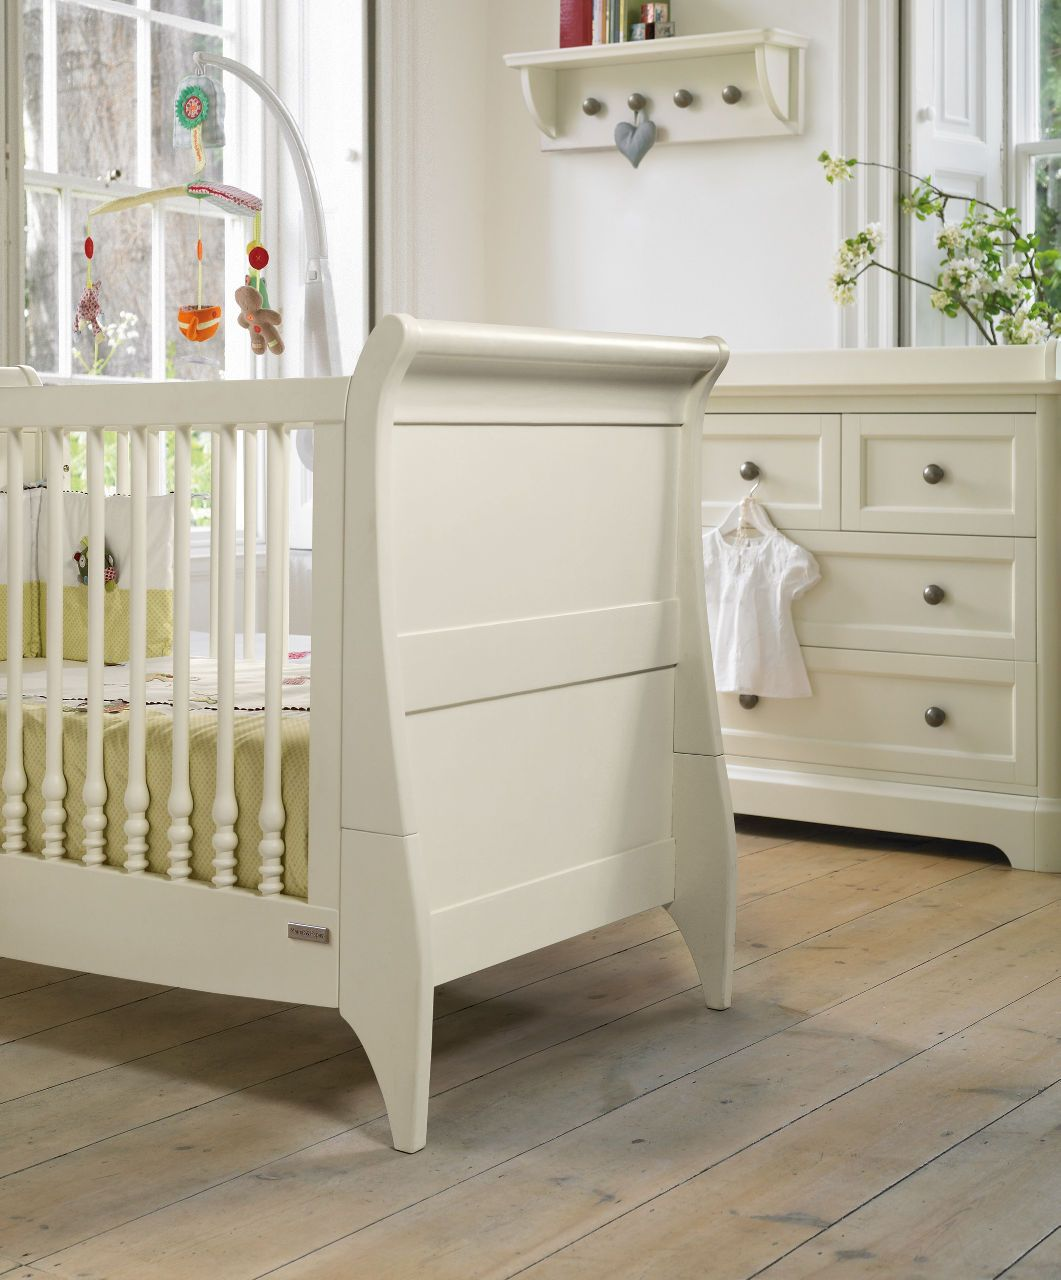 - Orchard Sleigh Cot/Toddler Bed - White - Orchard - Mamas & Papas